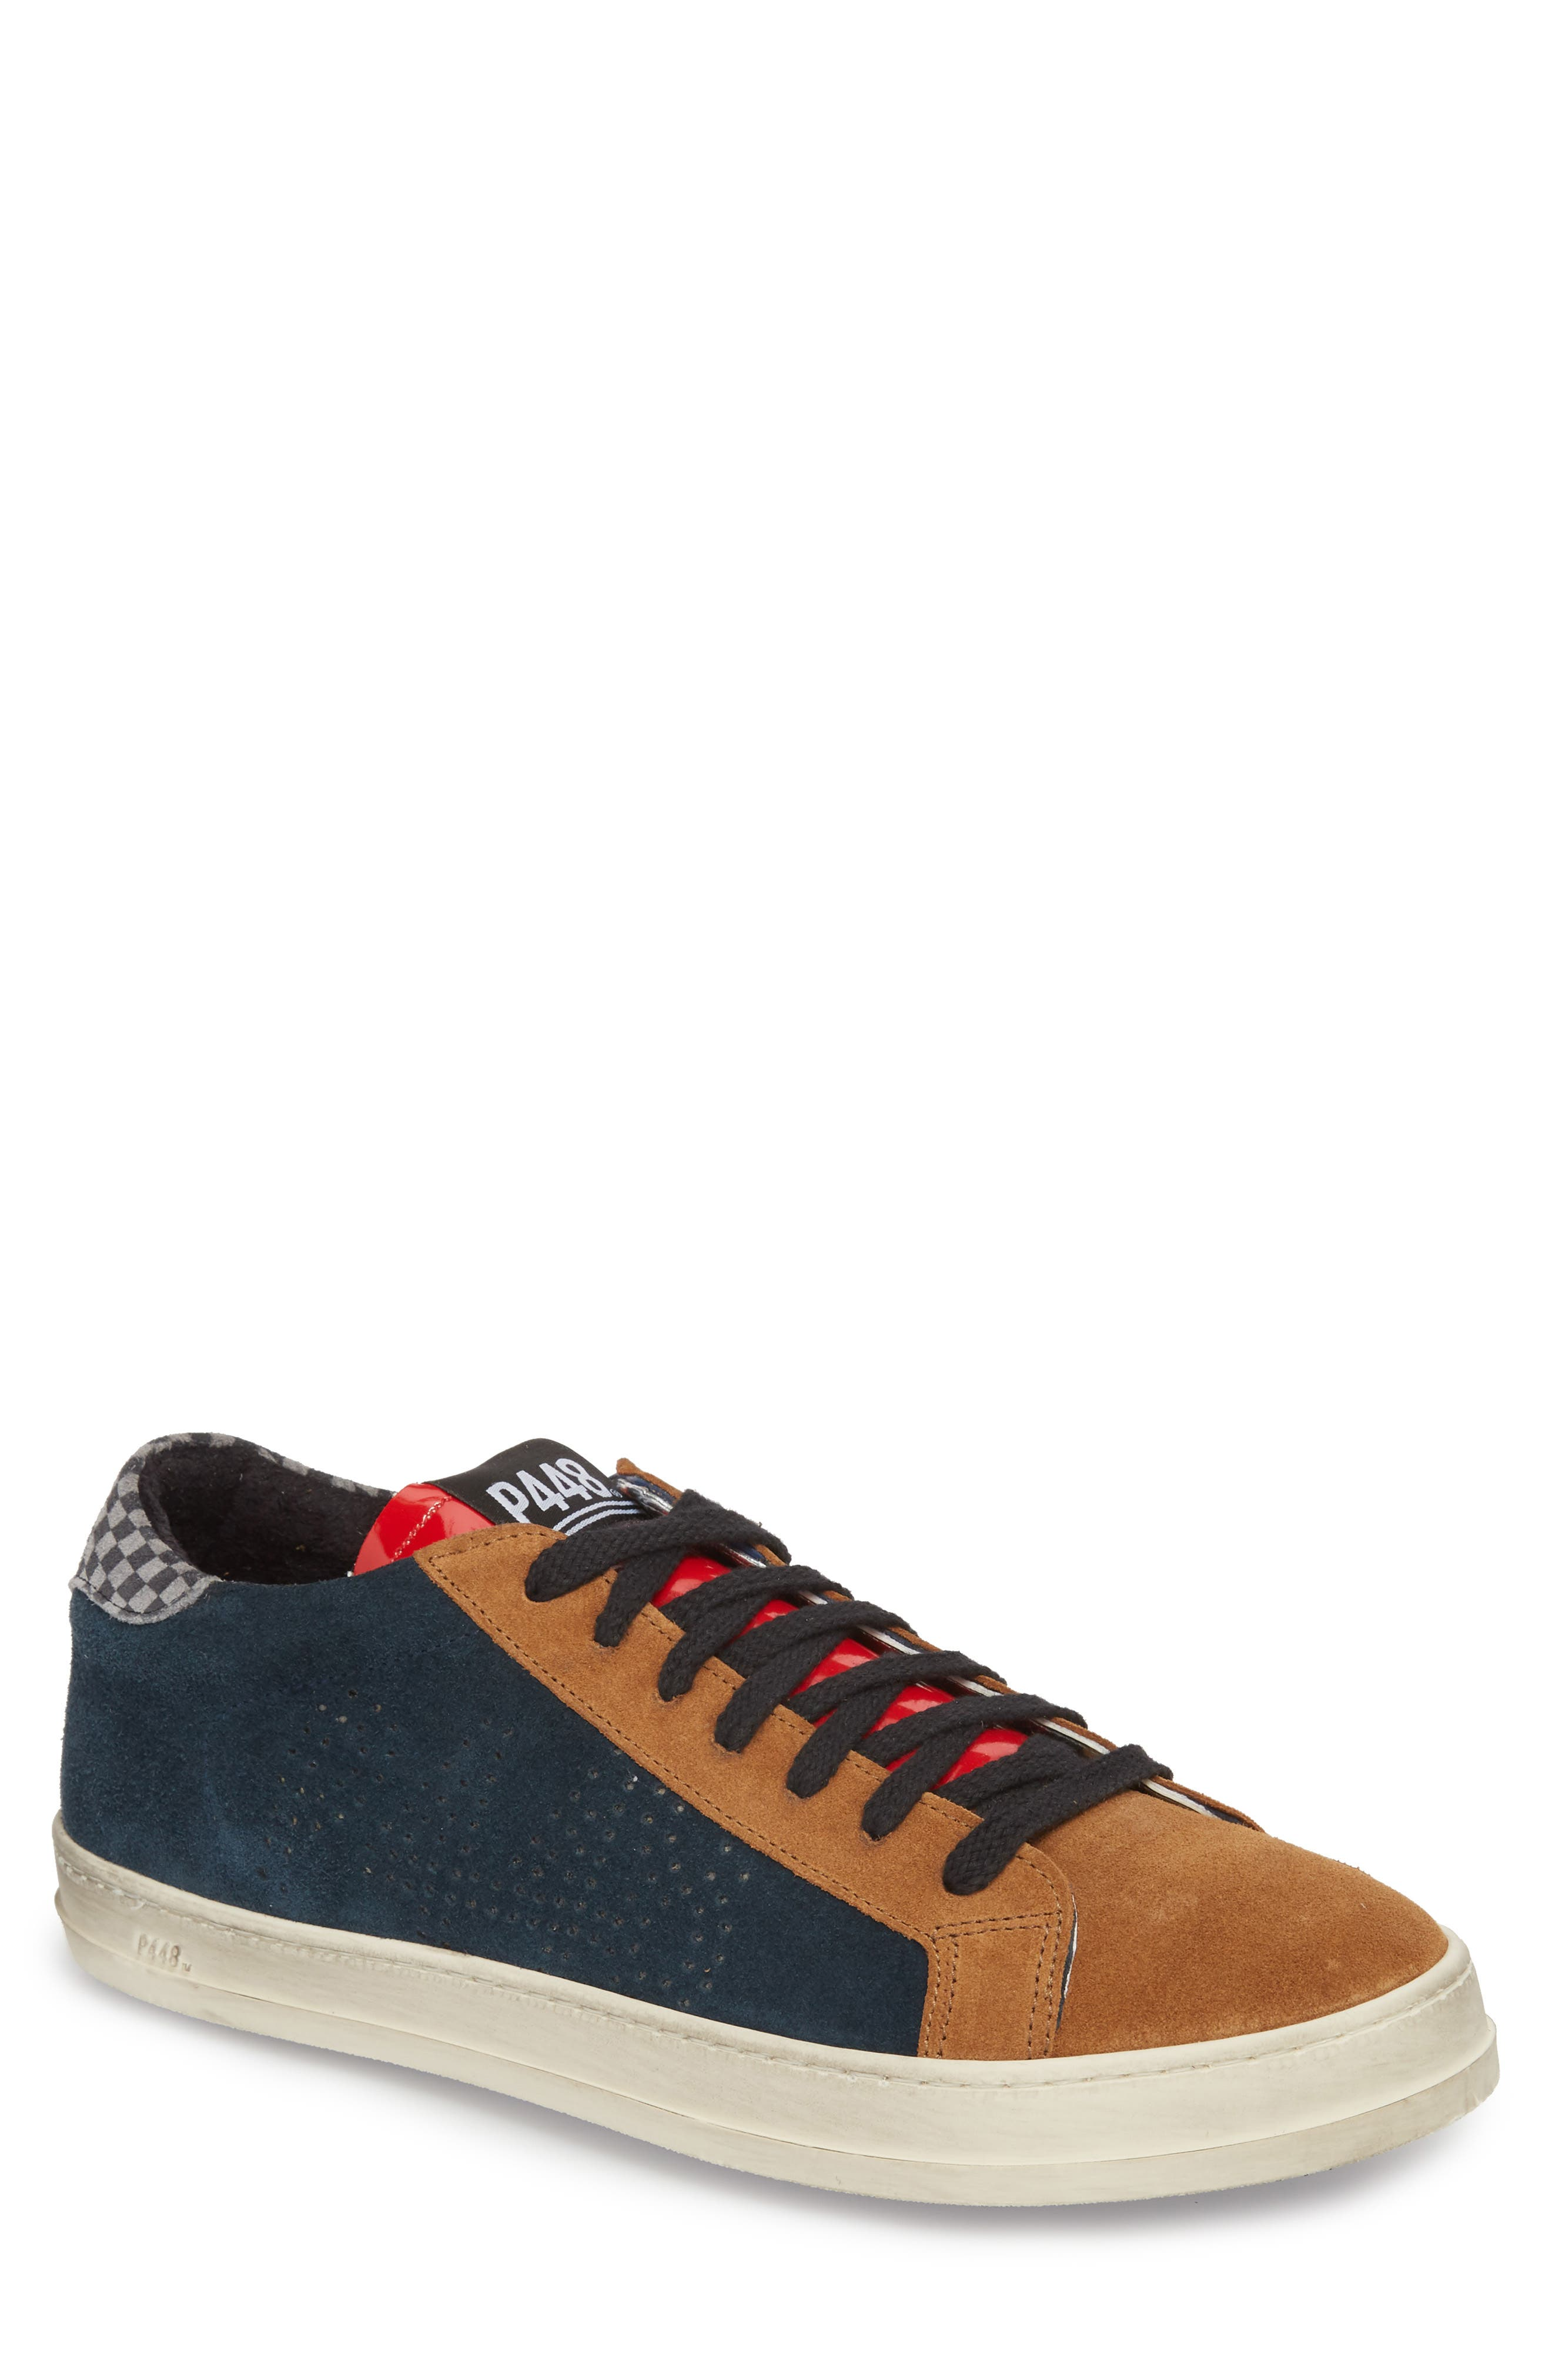 John Mix Low Top Sneaker,                         Main,                         color, FOREST BLUE